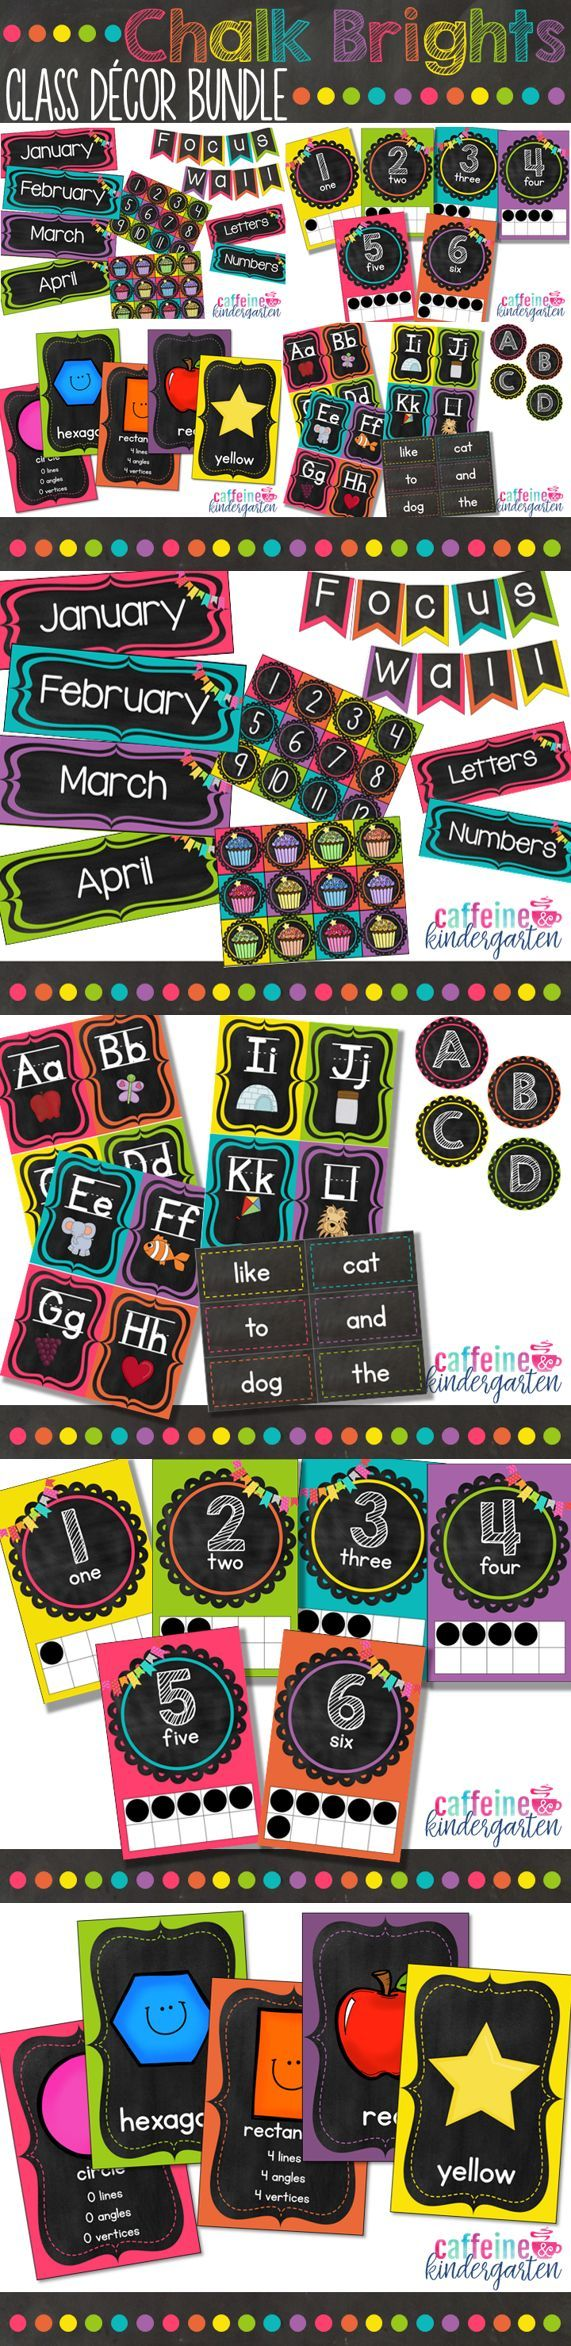 Classroom Decor Black : Chalkboard theme classroom decor bundle black and bright